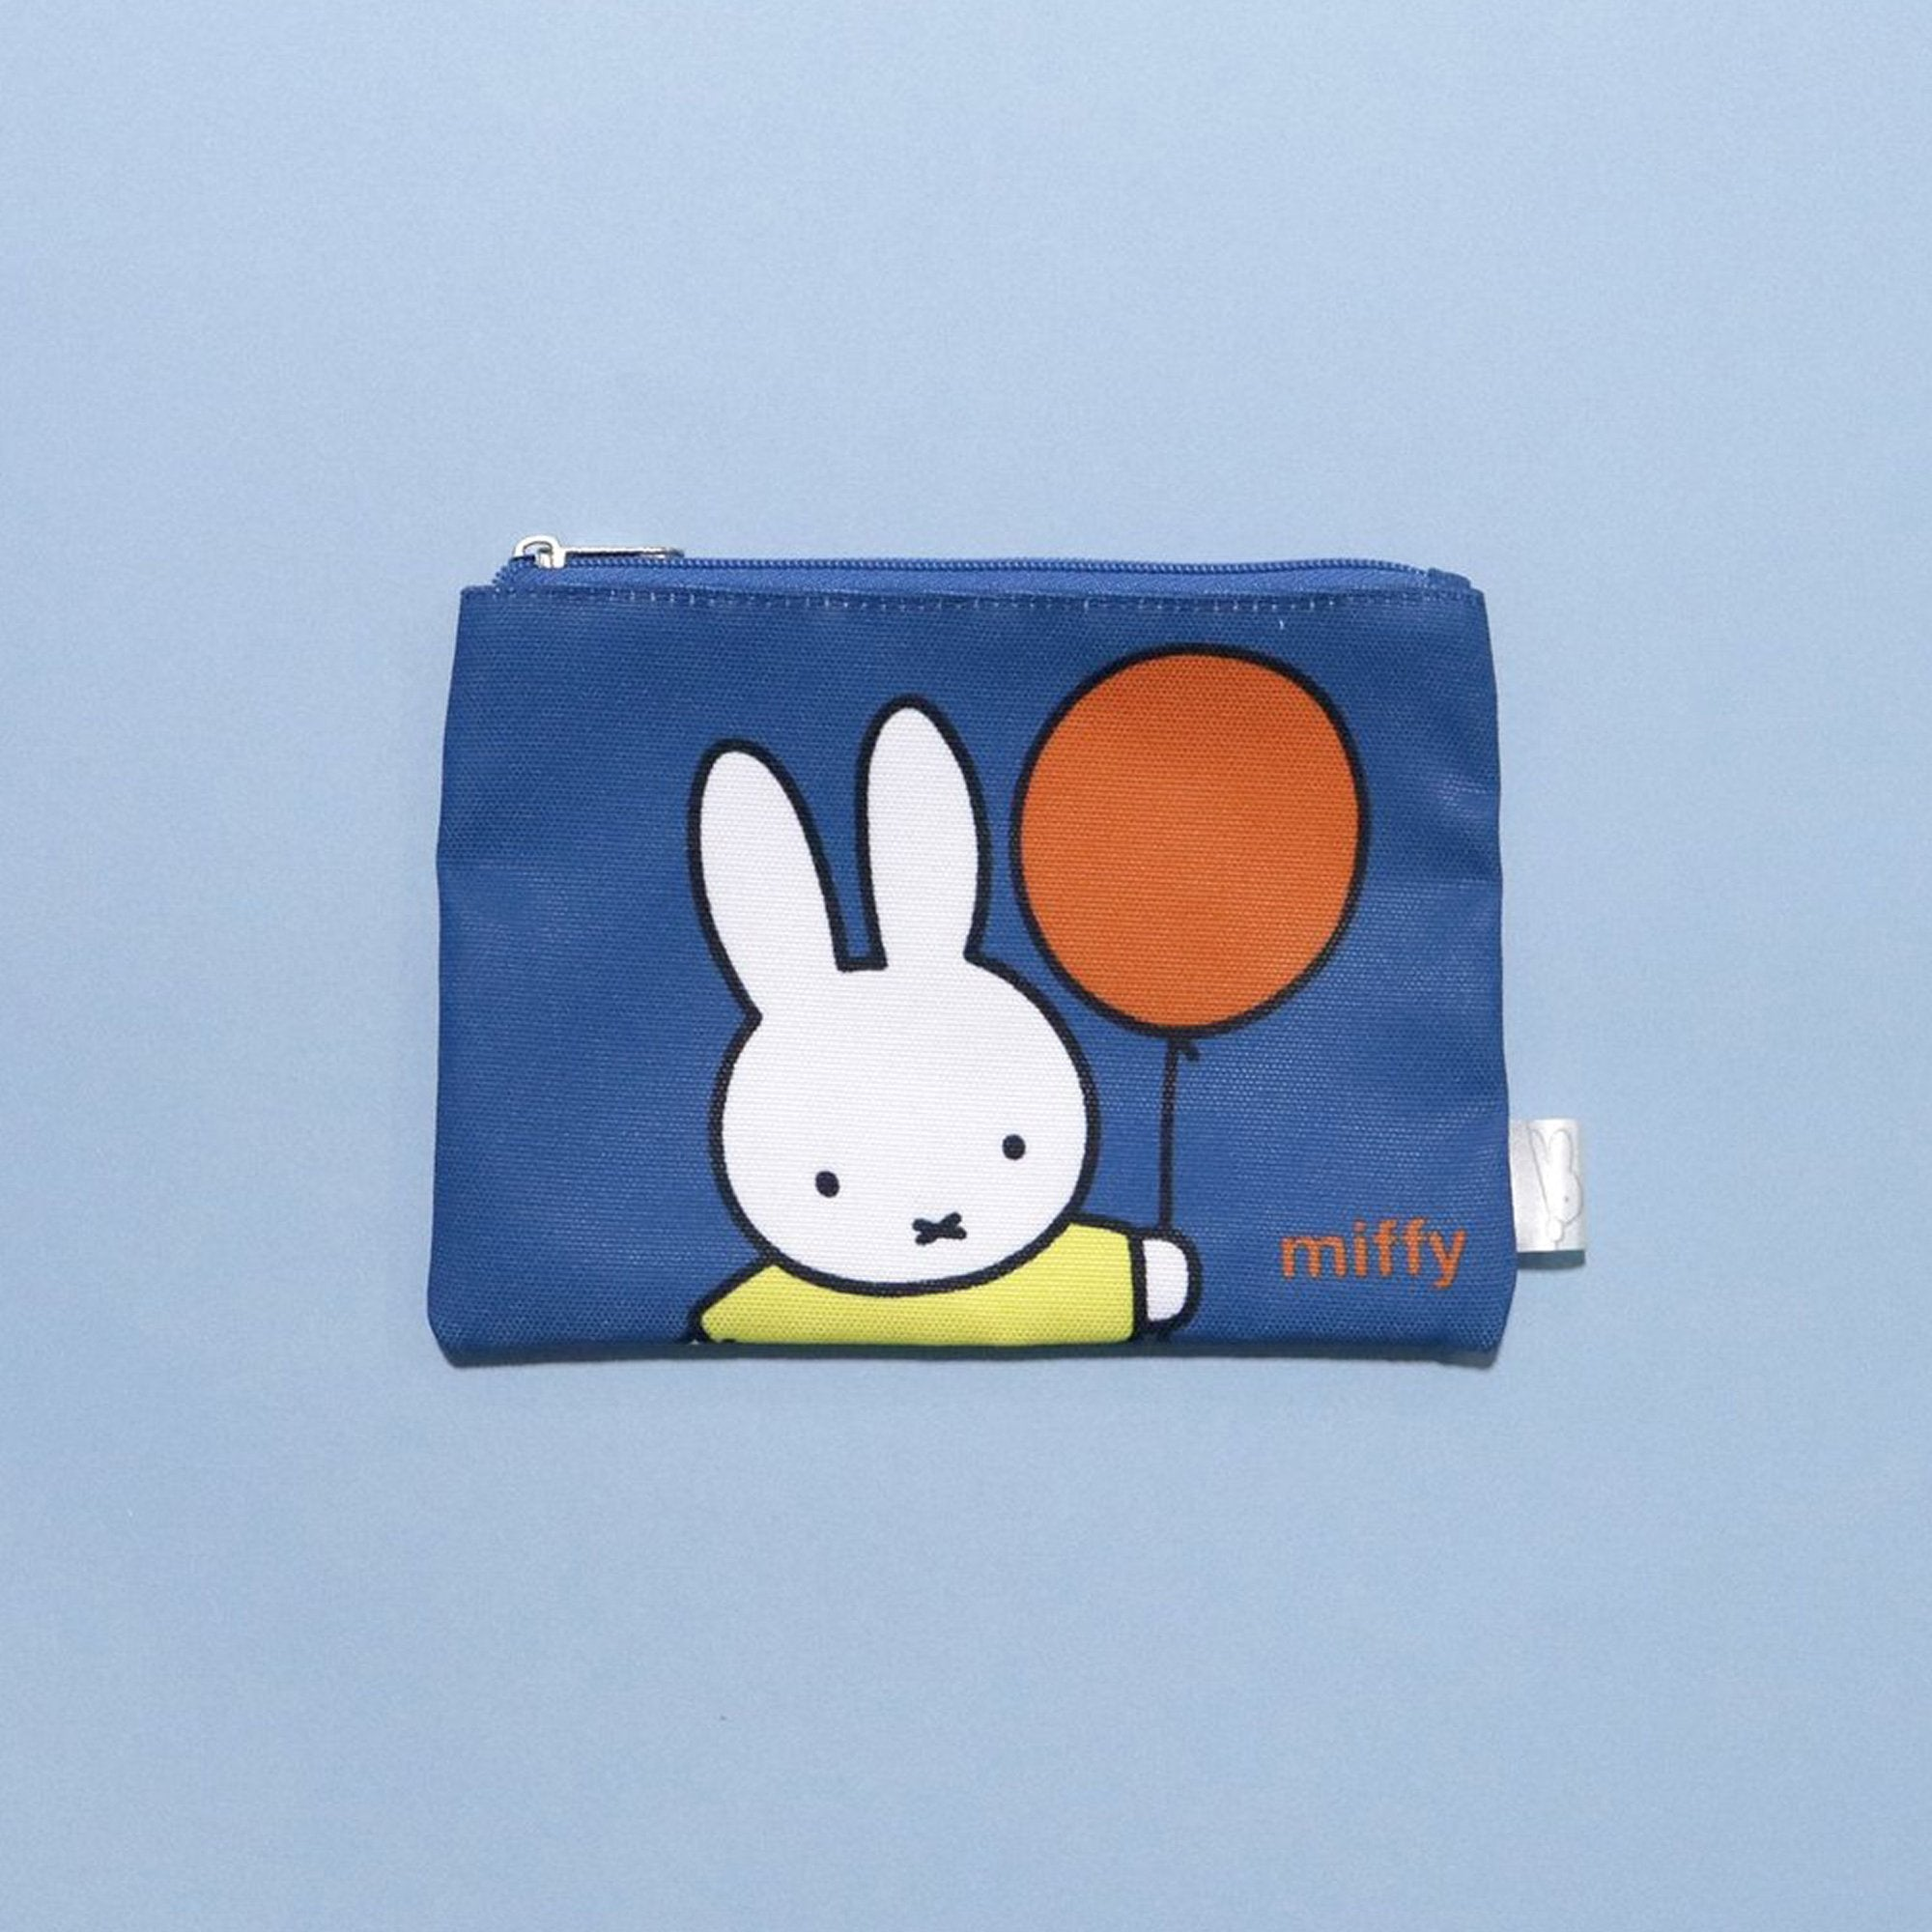 Miffy Balloon Zip Pouch - Zigzagme